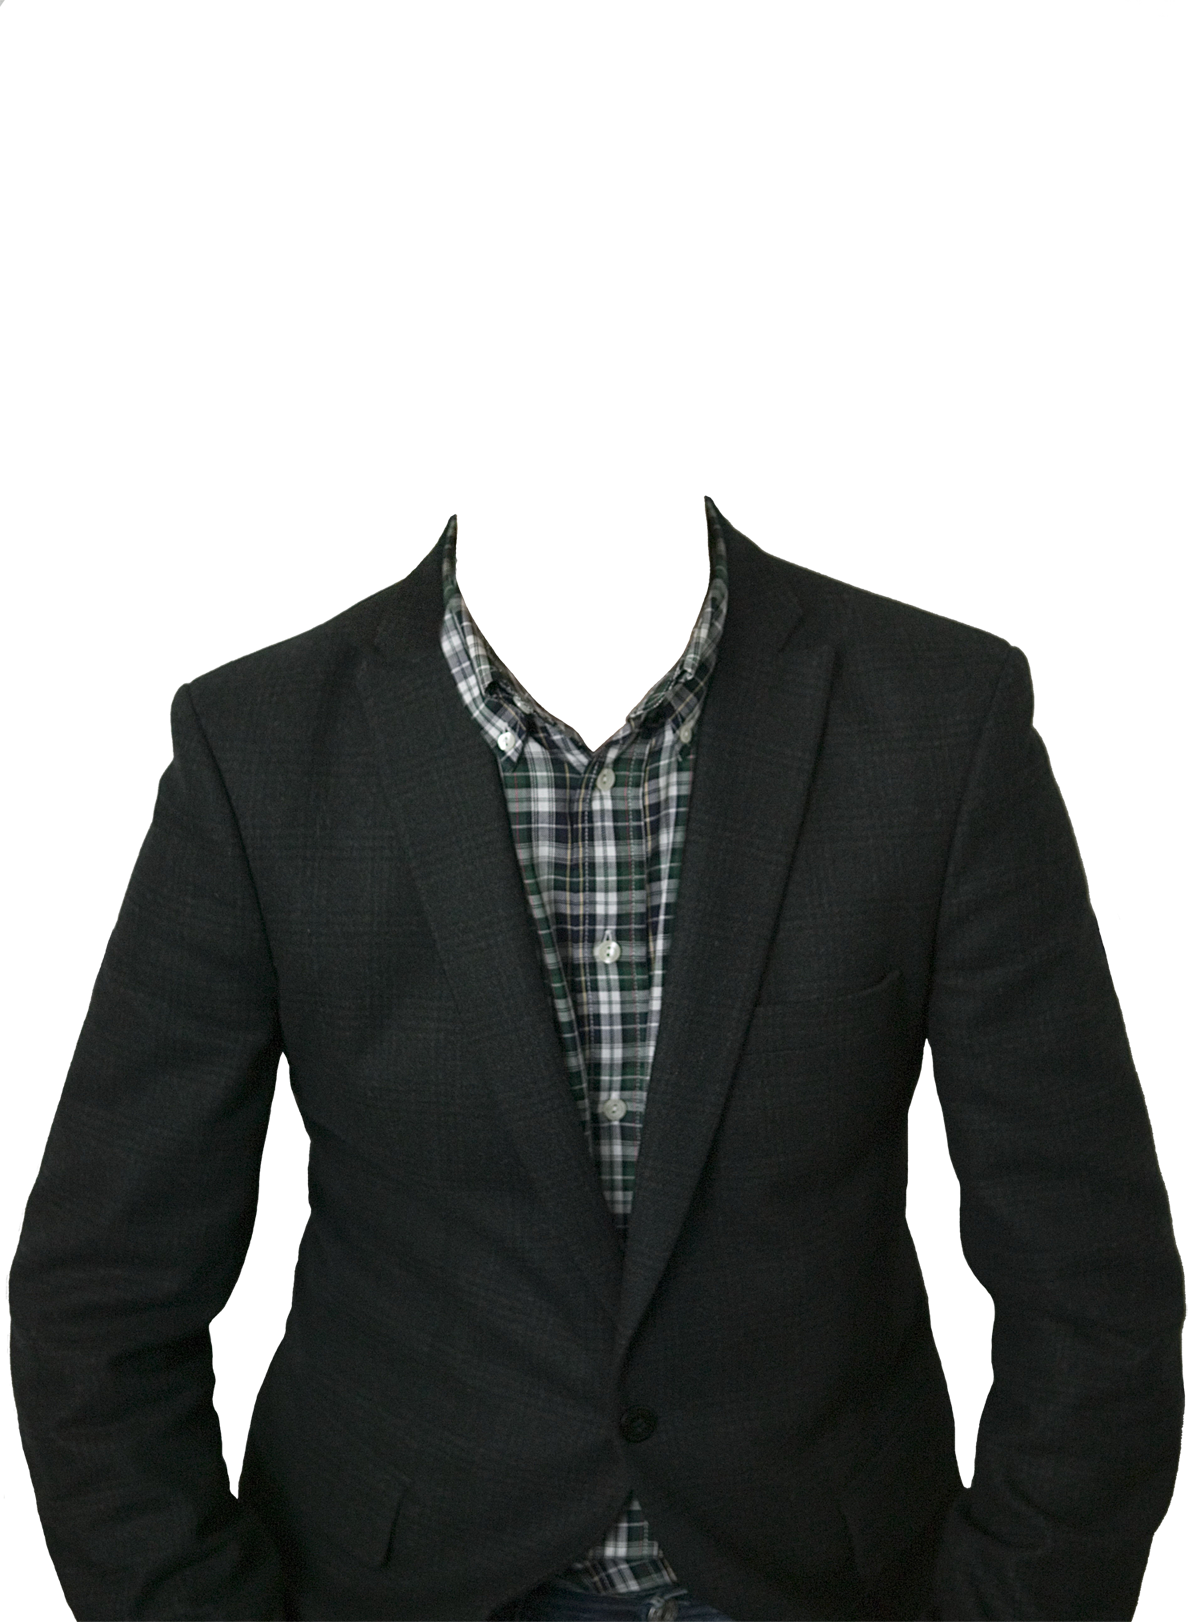 Suit template png. Images free download image